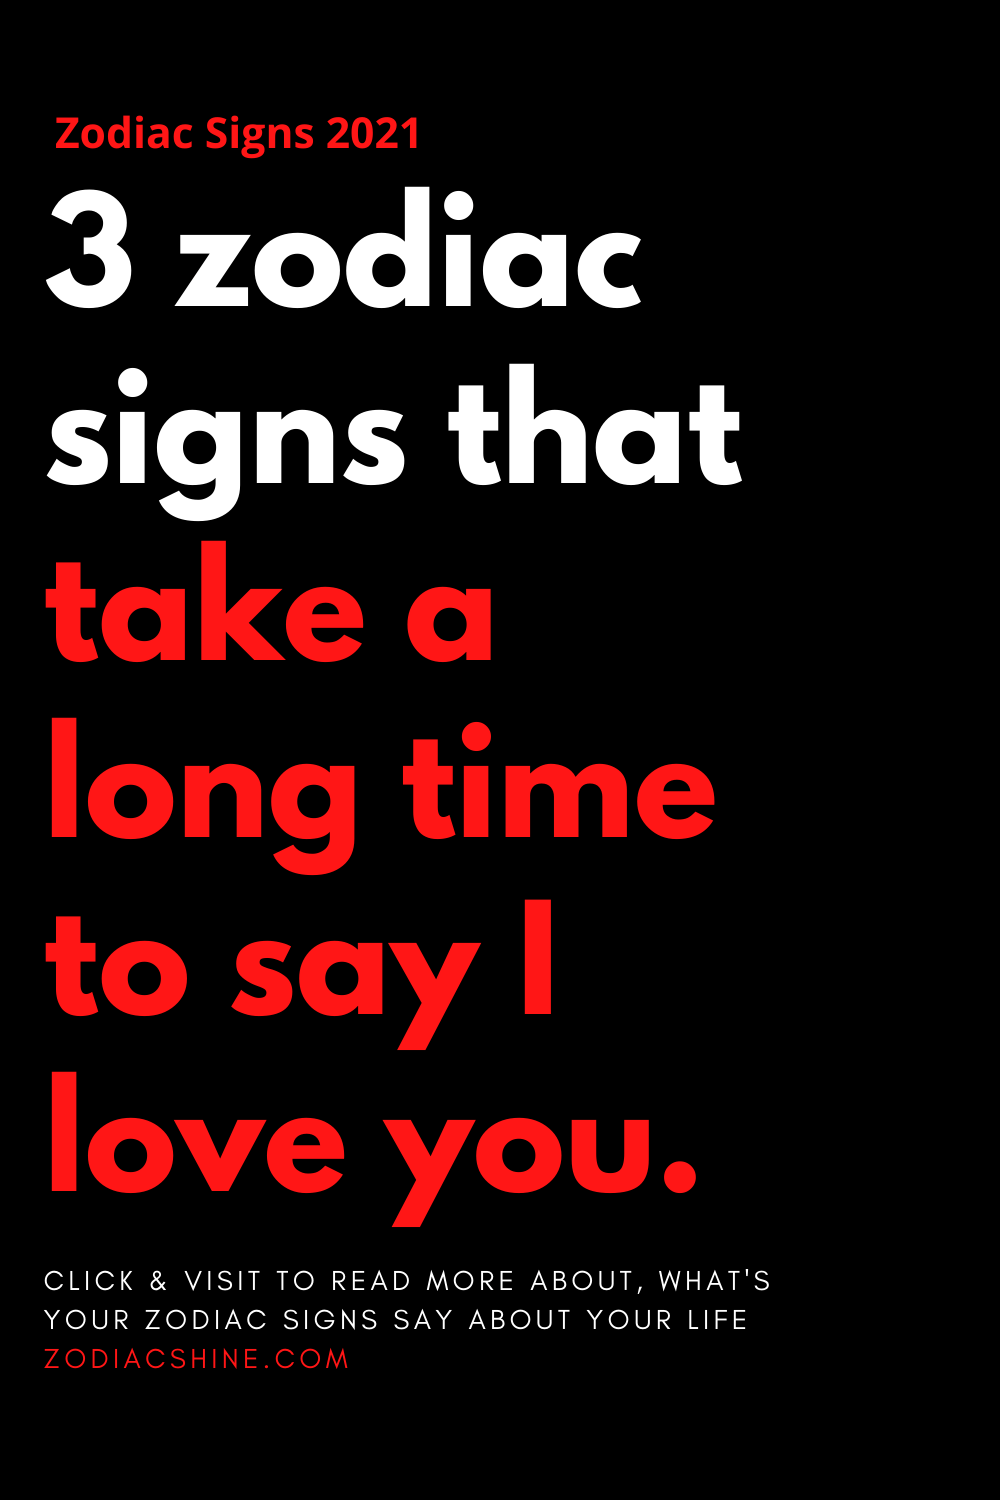 3 zodiac signs that take a long time to say I love you.